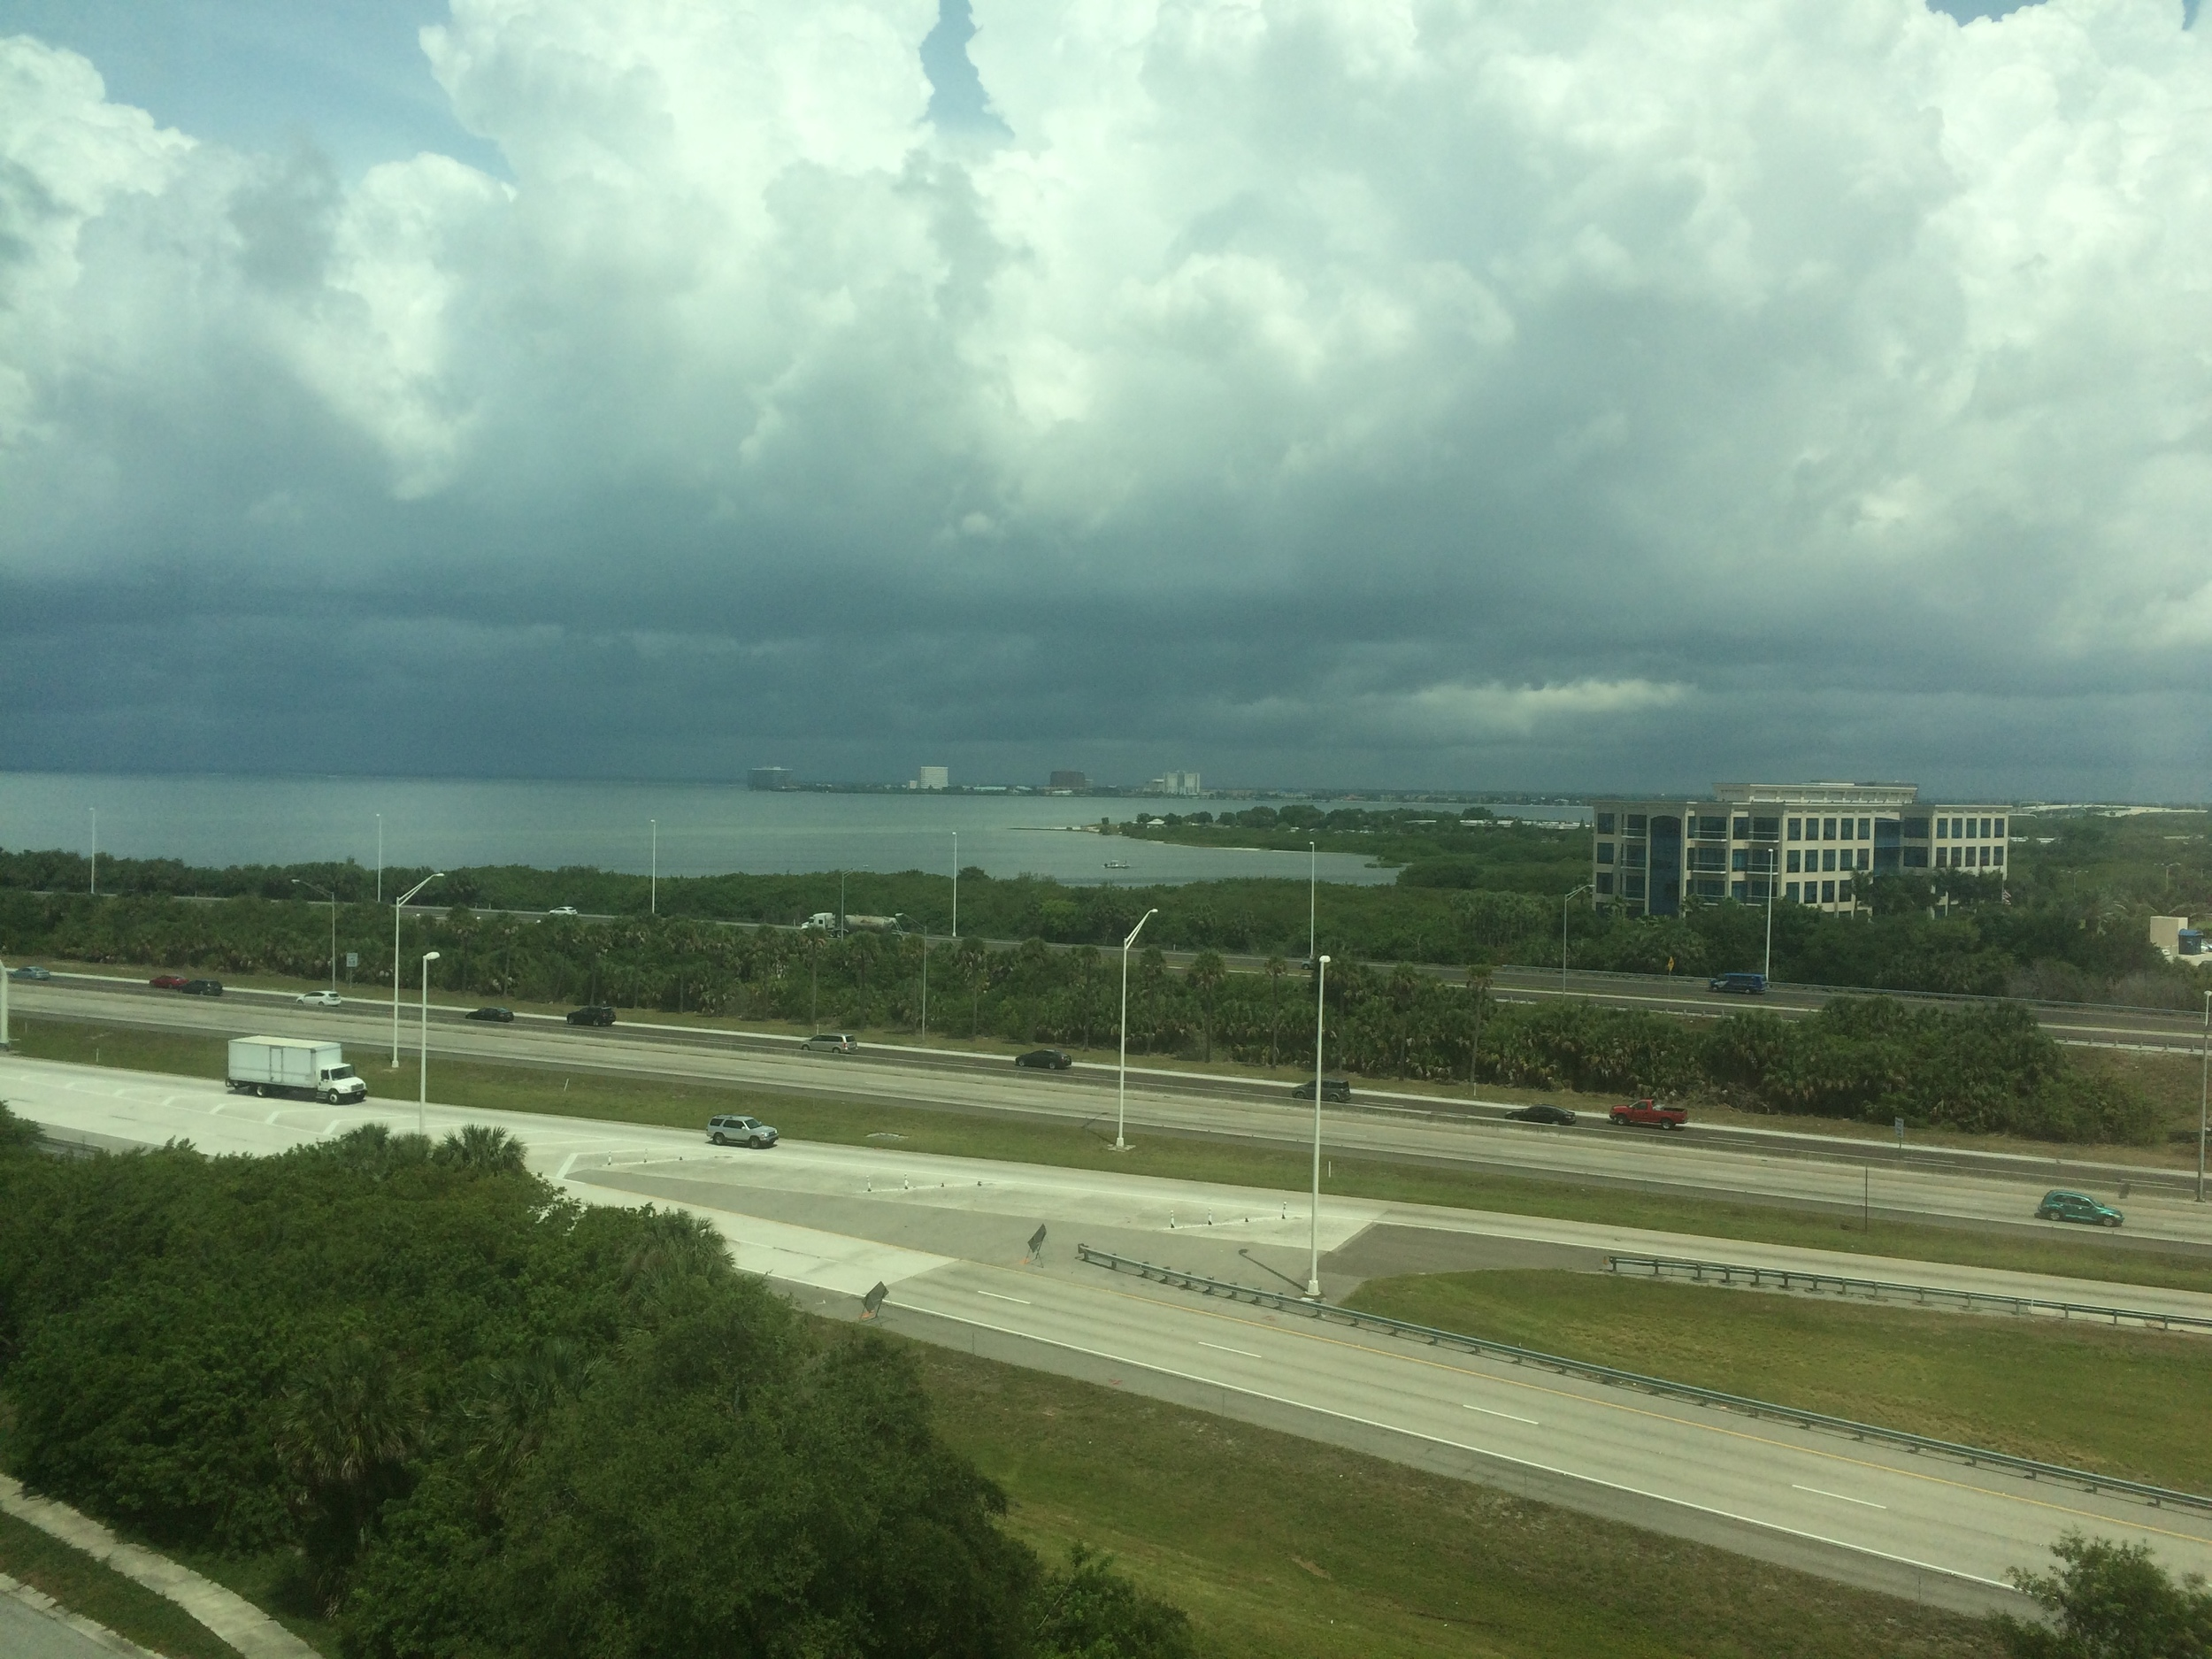 Check out the view- it's hard to see but we're looking right at Tampa Bay towards Tampa International Airport